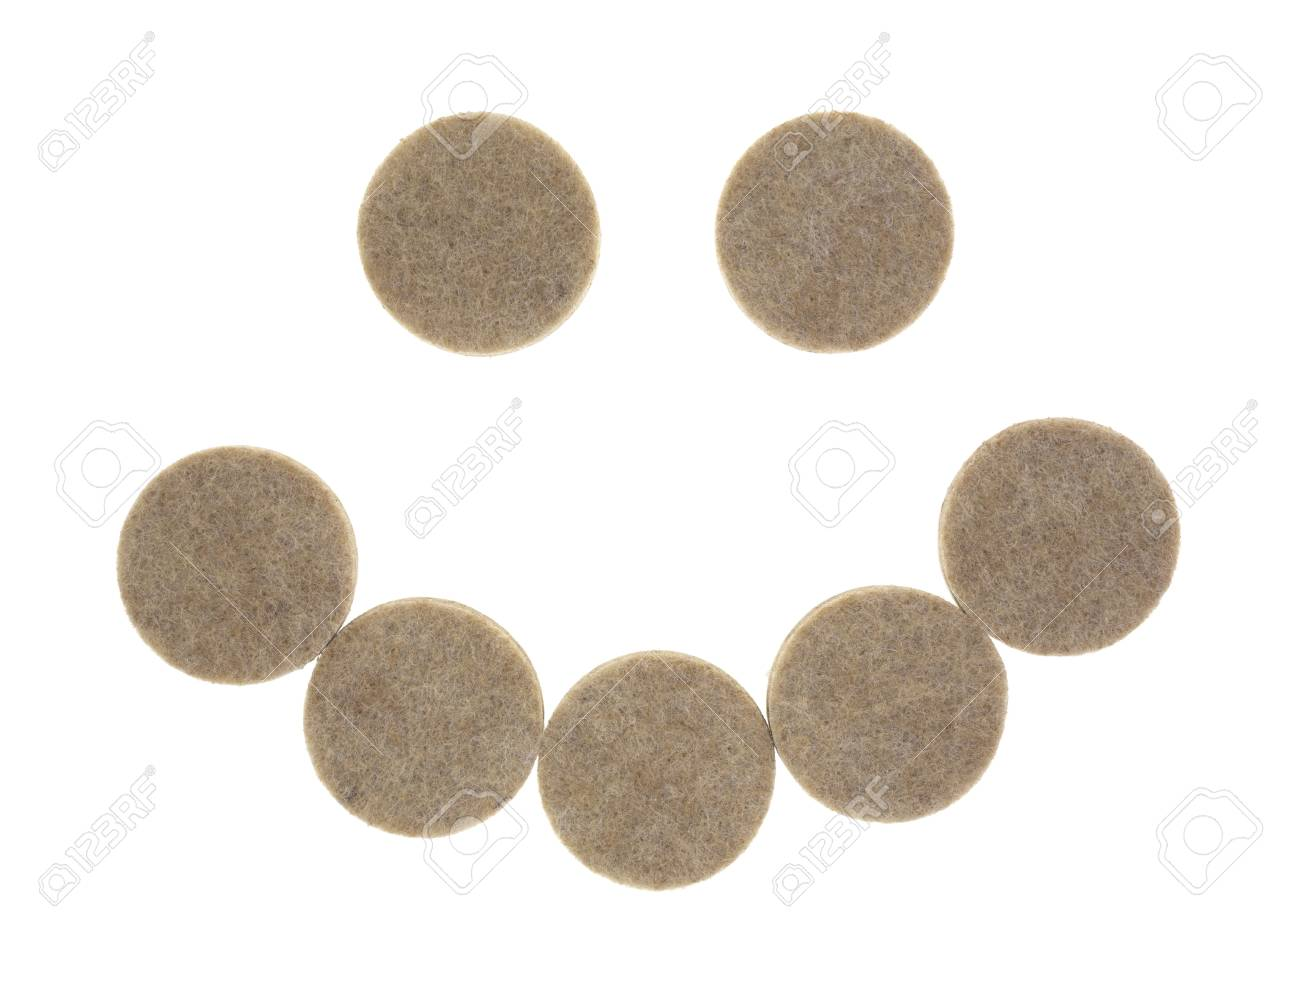 A group of felt surface protectors for protecting furniture and flooring in the shape of a smile on a white background. Stock Photo - 20407821